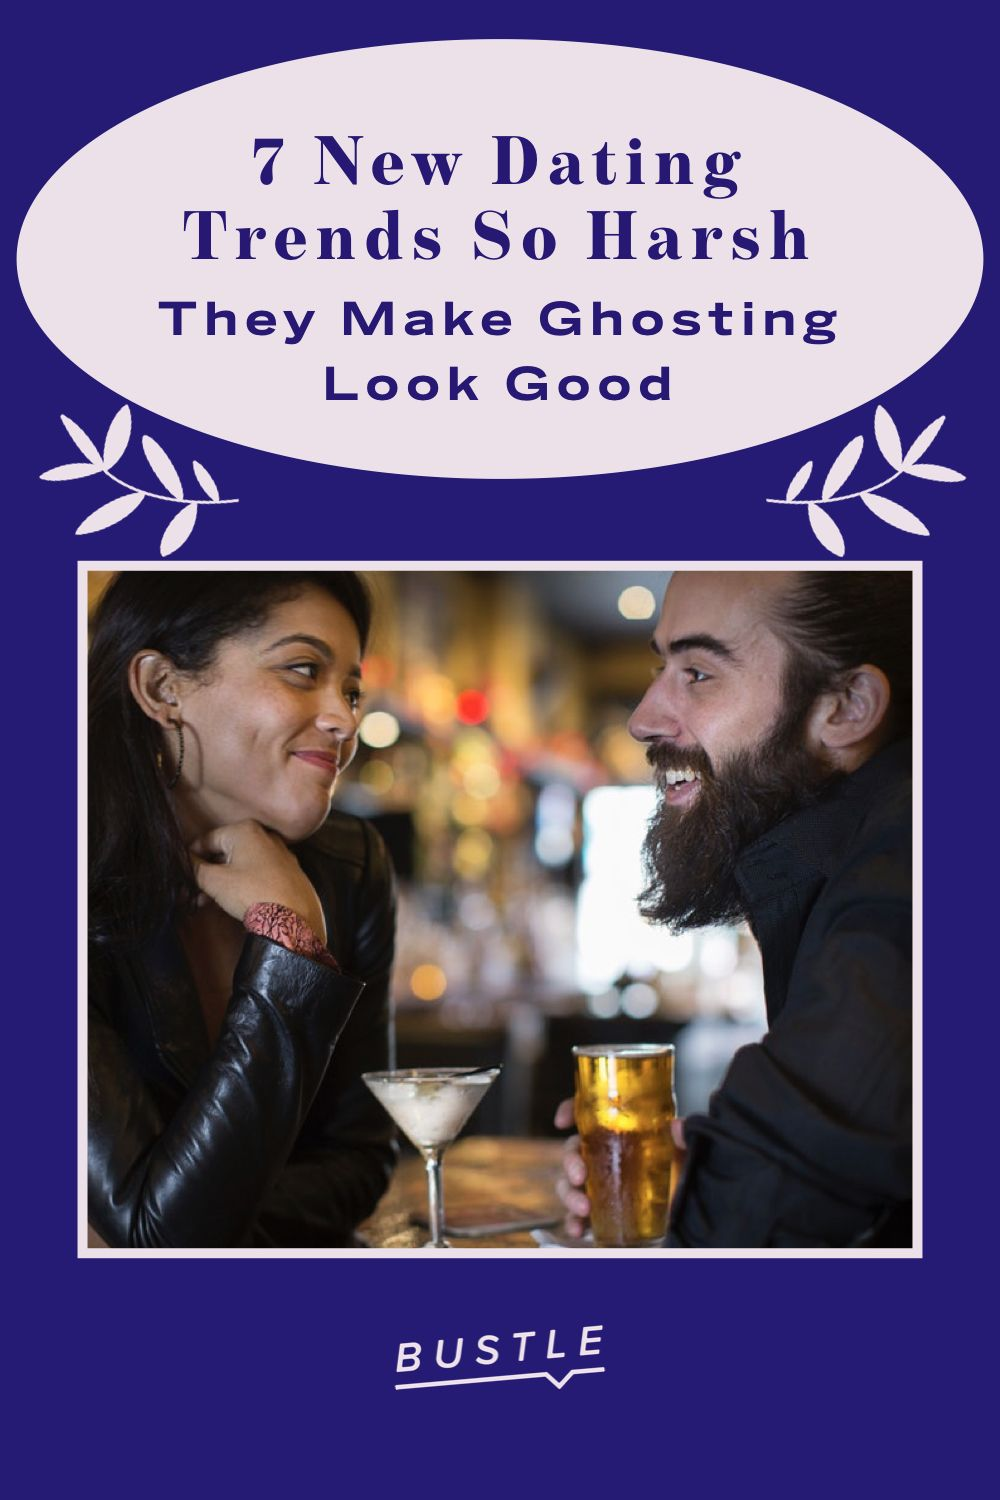 7 New Dating Trends So Harsh They Make Ghosting Look Good